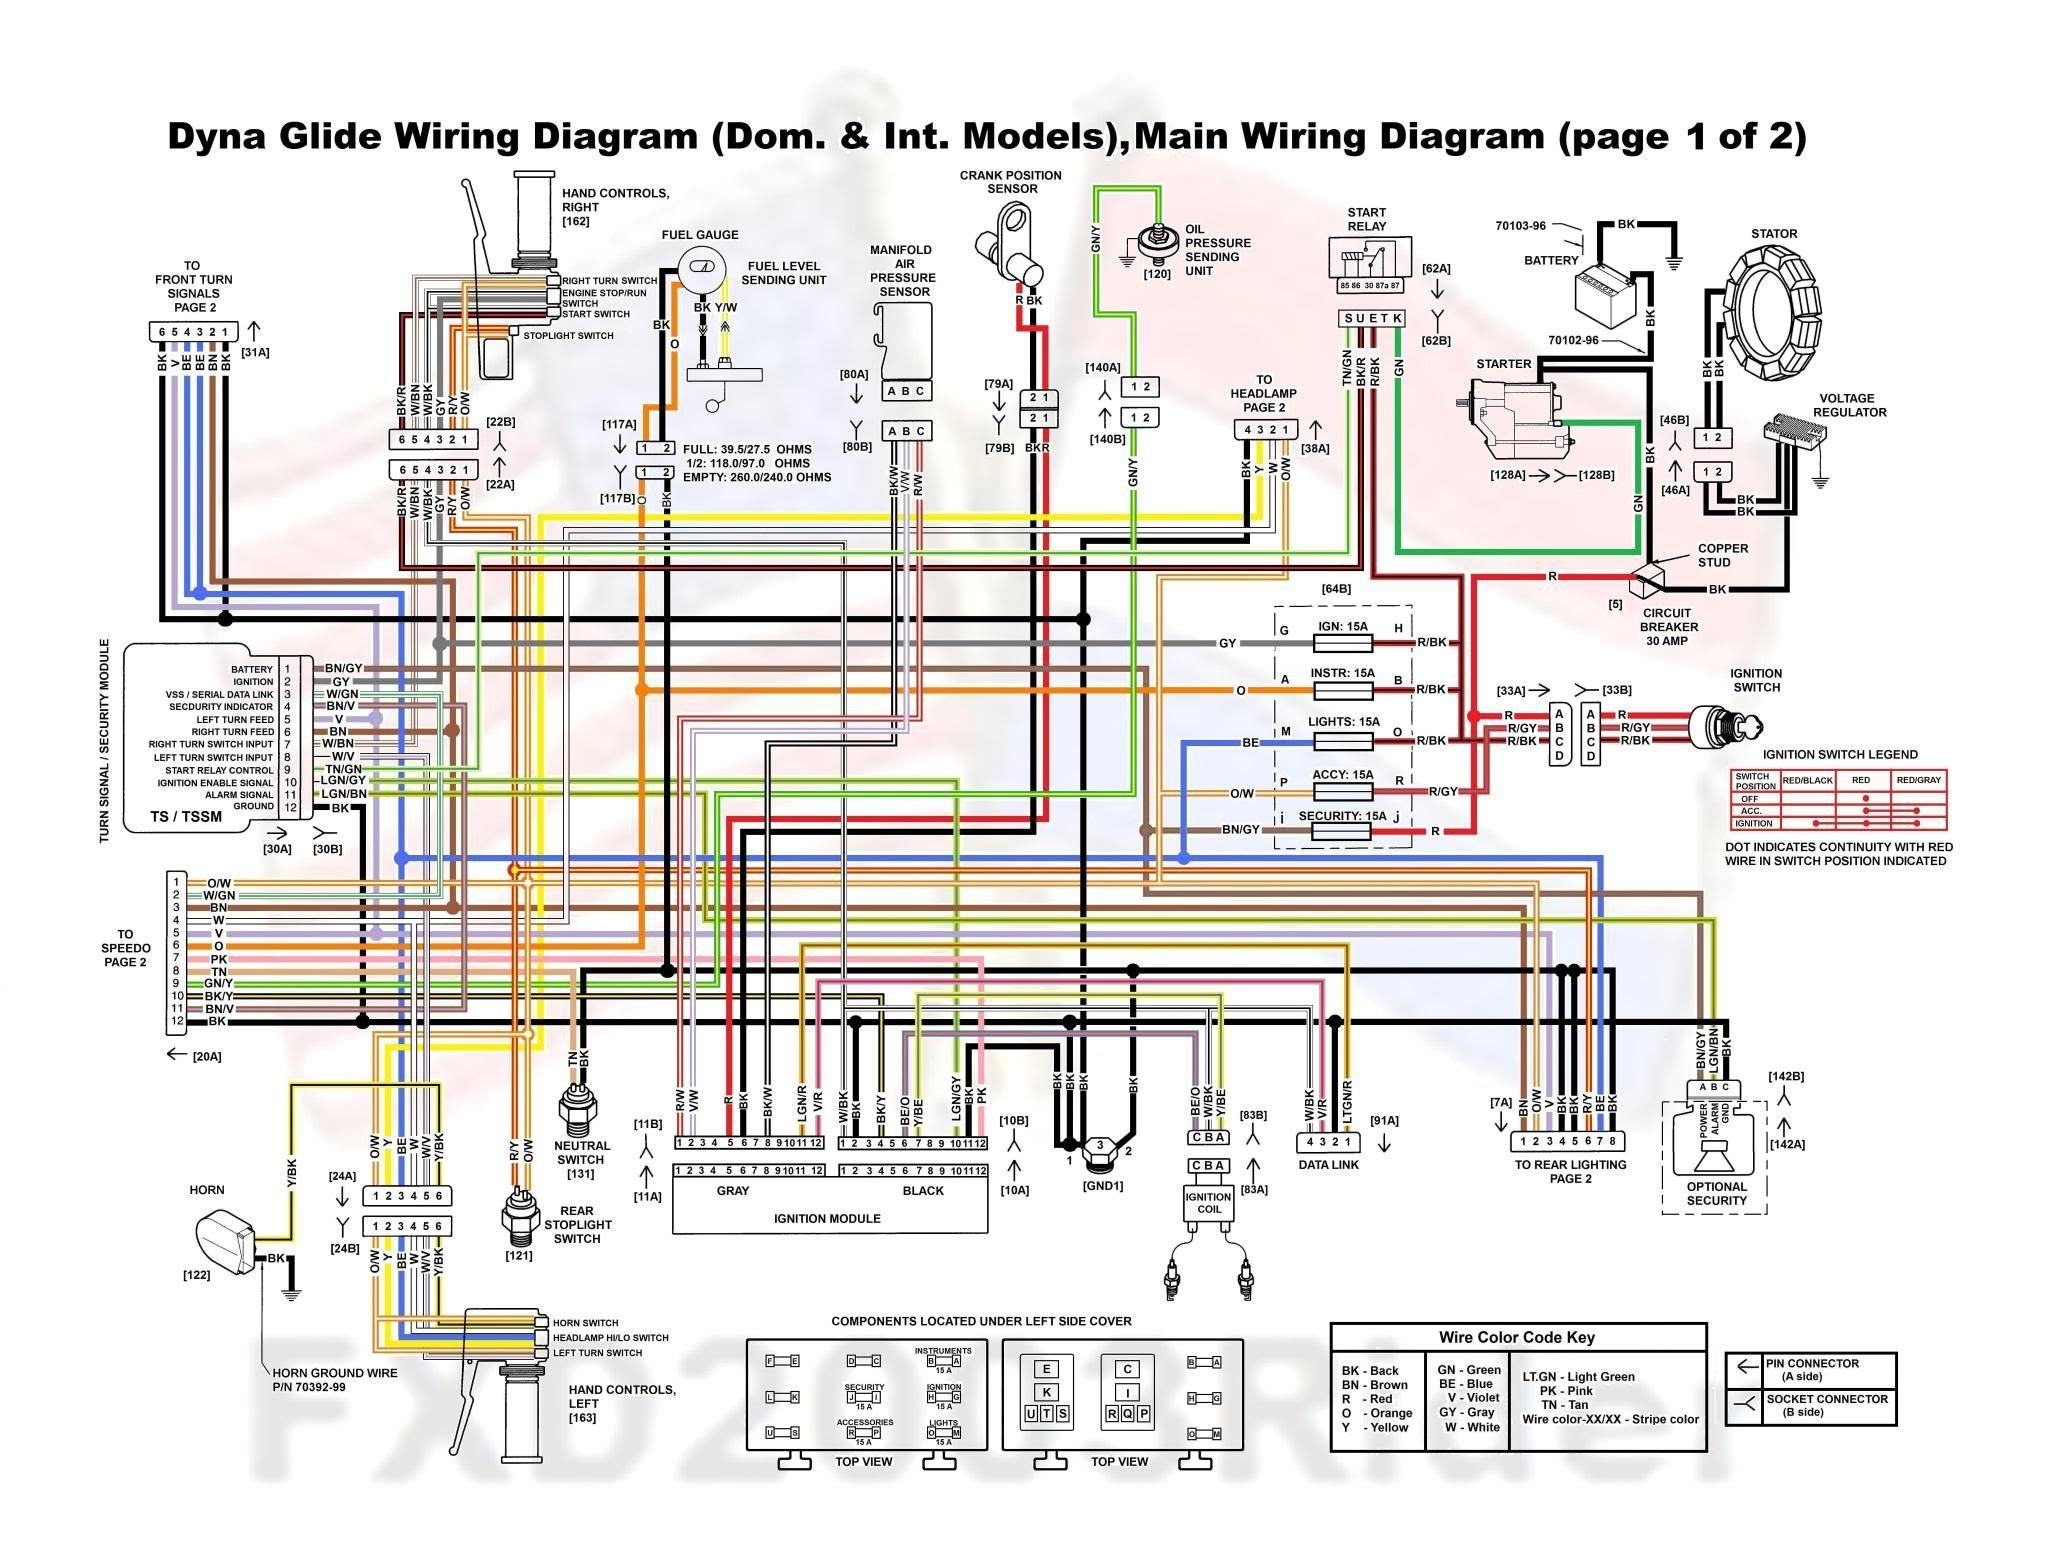 Basic Wiring Diagram For Harley Davidson | WiringDiagram.org ... on harley wiring diagram wires, harley handlebar wiring diagram, harley starter wiring diagram, harley softail wiring diagram, harley electrical system, harley sportster wiring diagram, harley ignition wiring, harley heated grips wiring diagram, harley ignition switch replacement, harley wiring schematics, harley turn signal wiring diagram, harley speedometer wiring diagram, harley wiring diagram simplified, harley coil wiring, harley wiring harness diagram, harley dyna frame diagram, harley wiring diagrams online, harley wiring diagrams pdf, harley chopper wiring diagram,